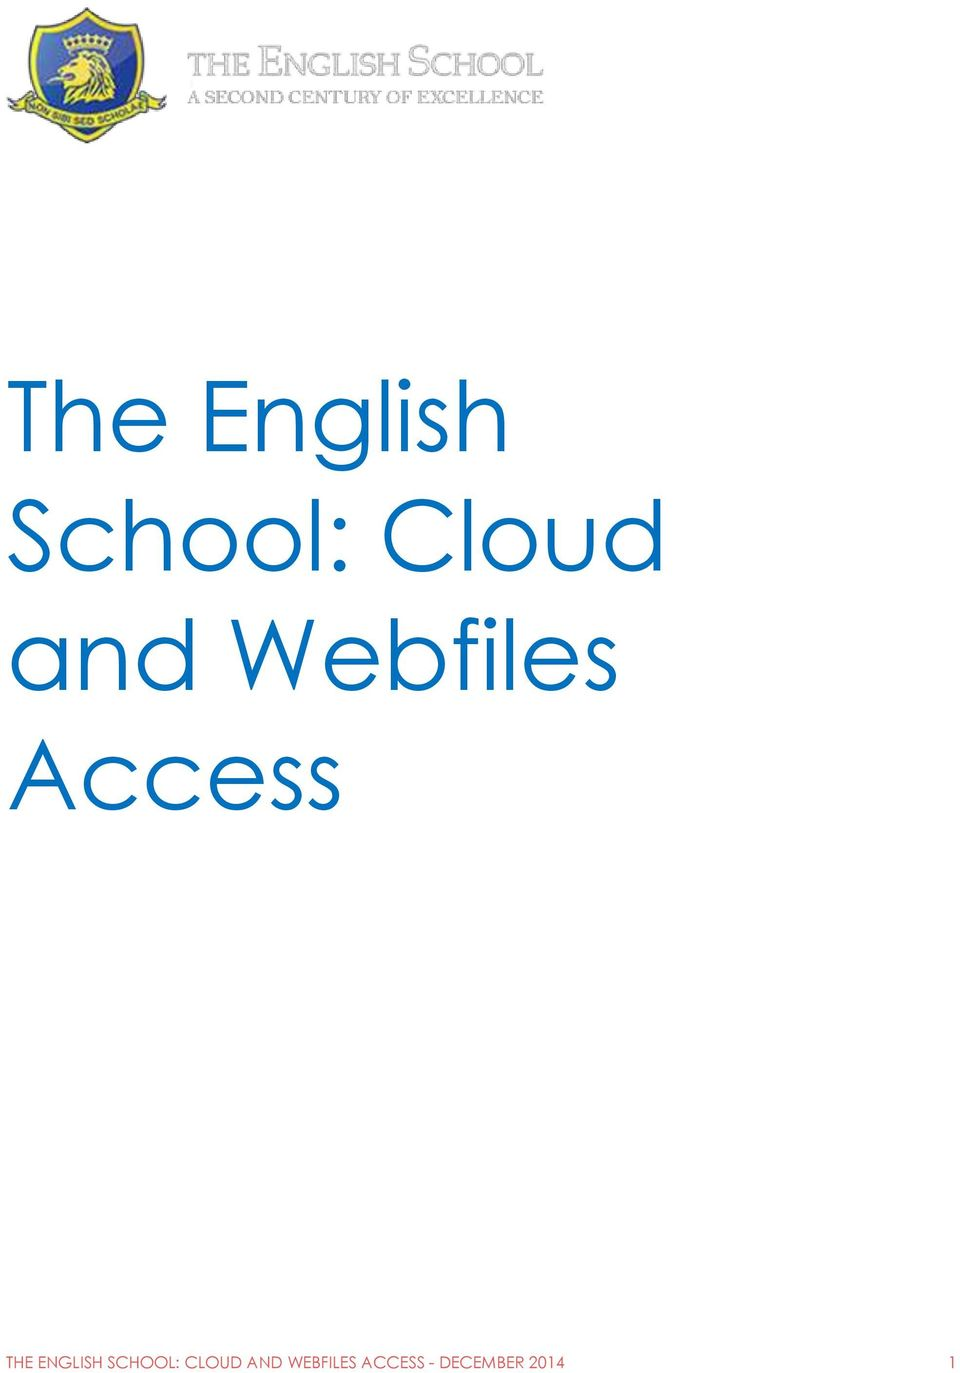 ENGLISH SCHOOL: CLOUD AND